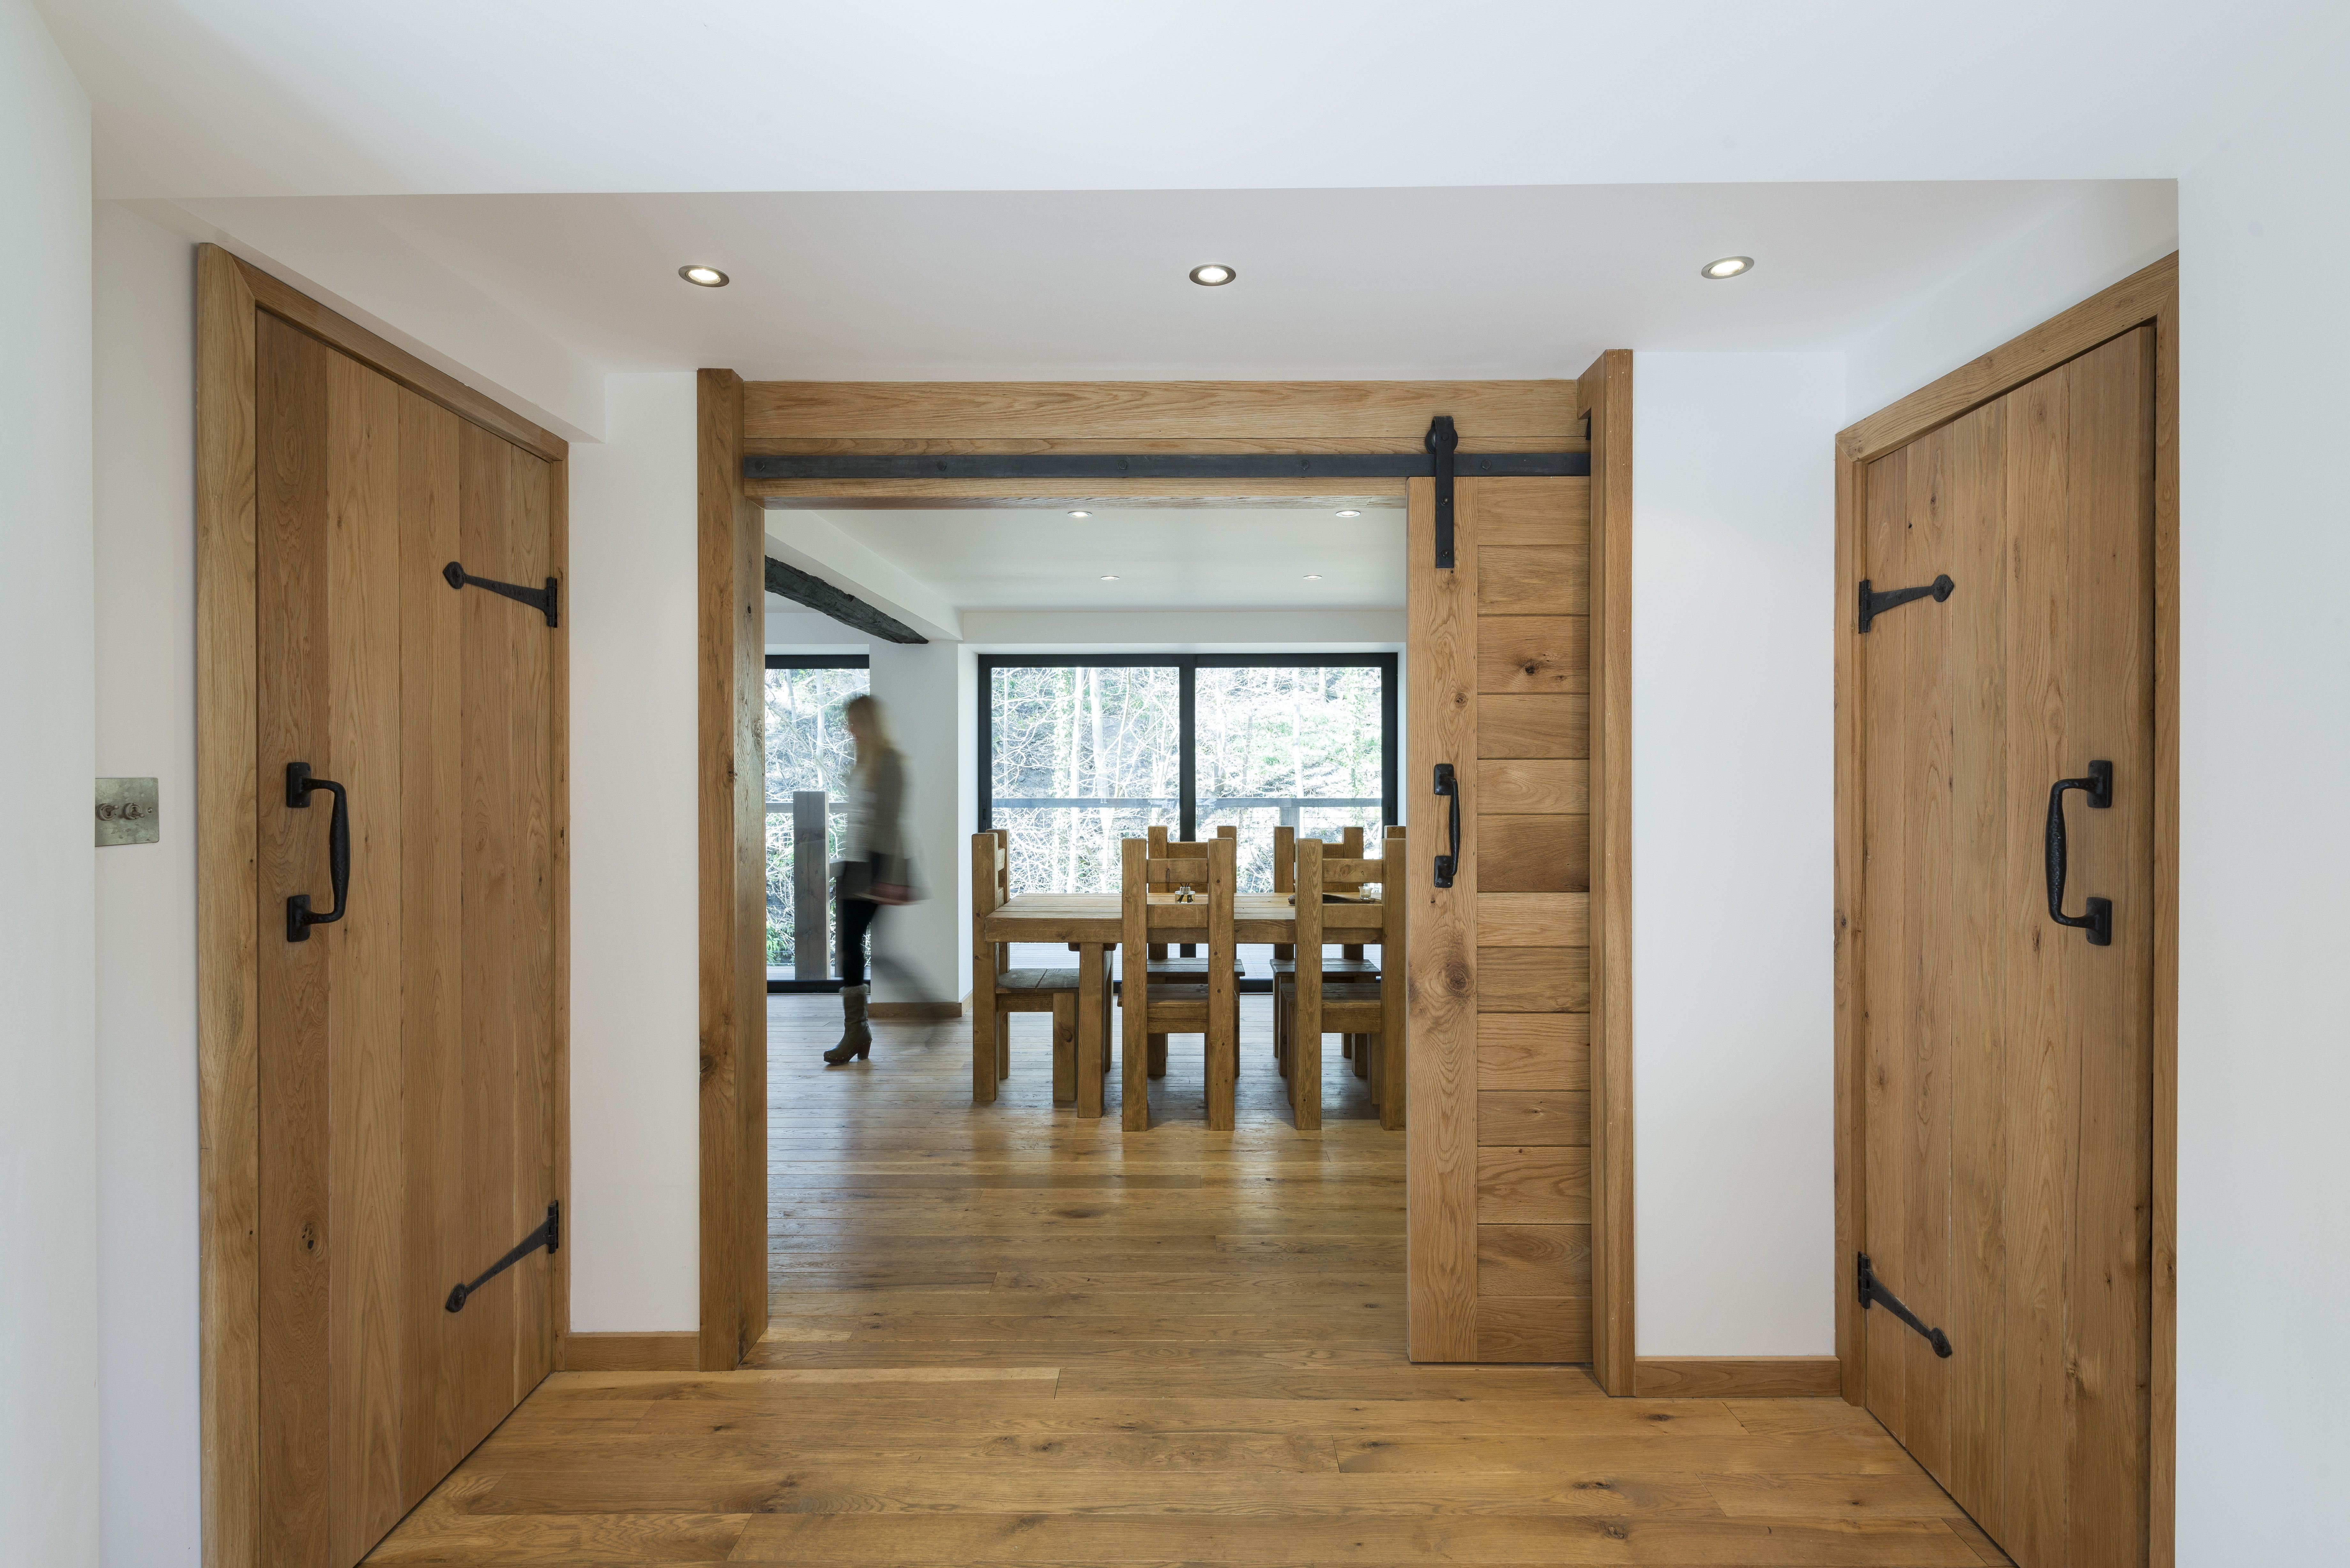 Contemporary barn conversion install Heritage\'s interior solid oak ...